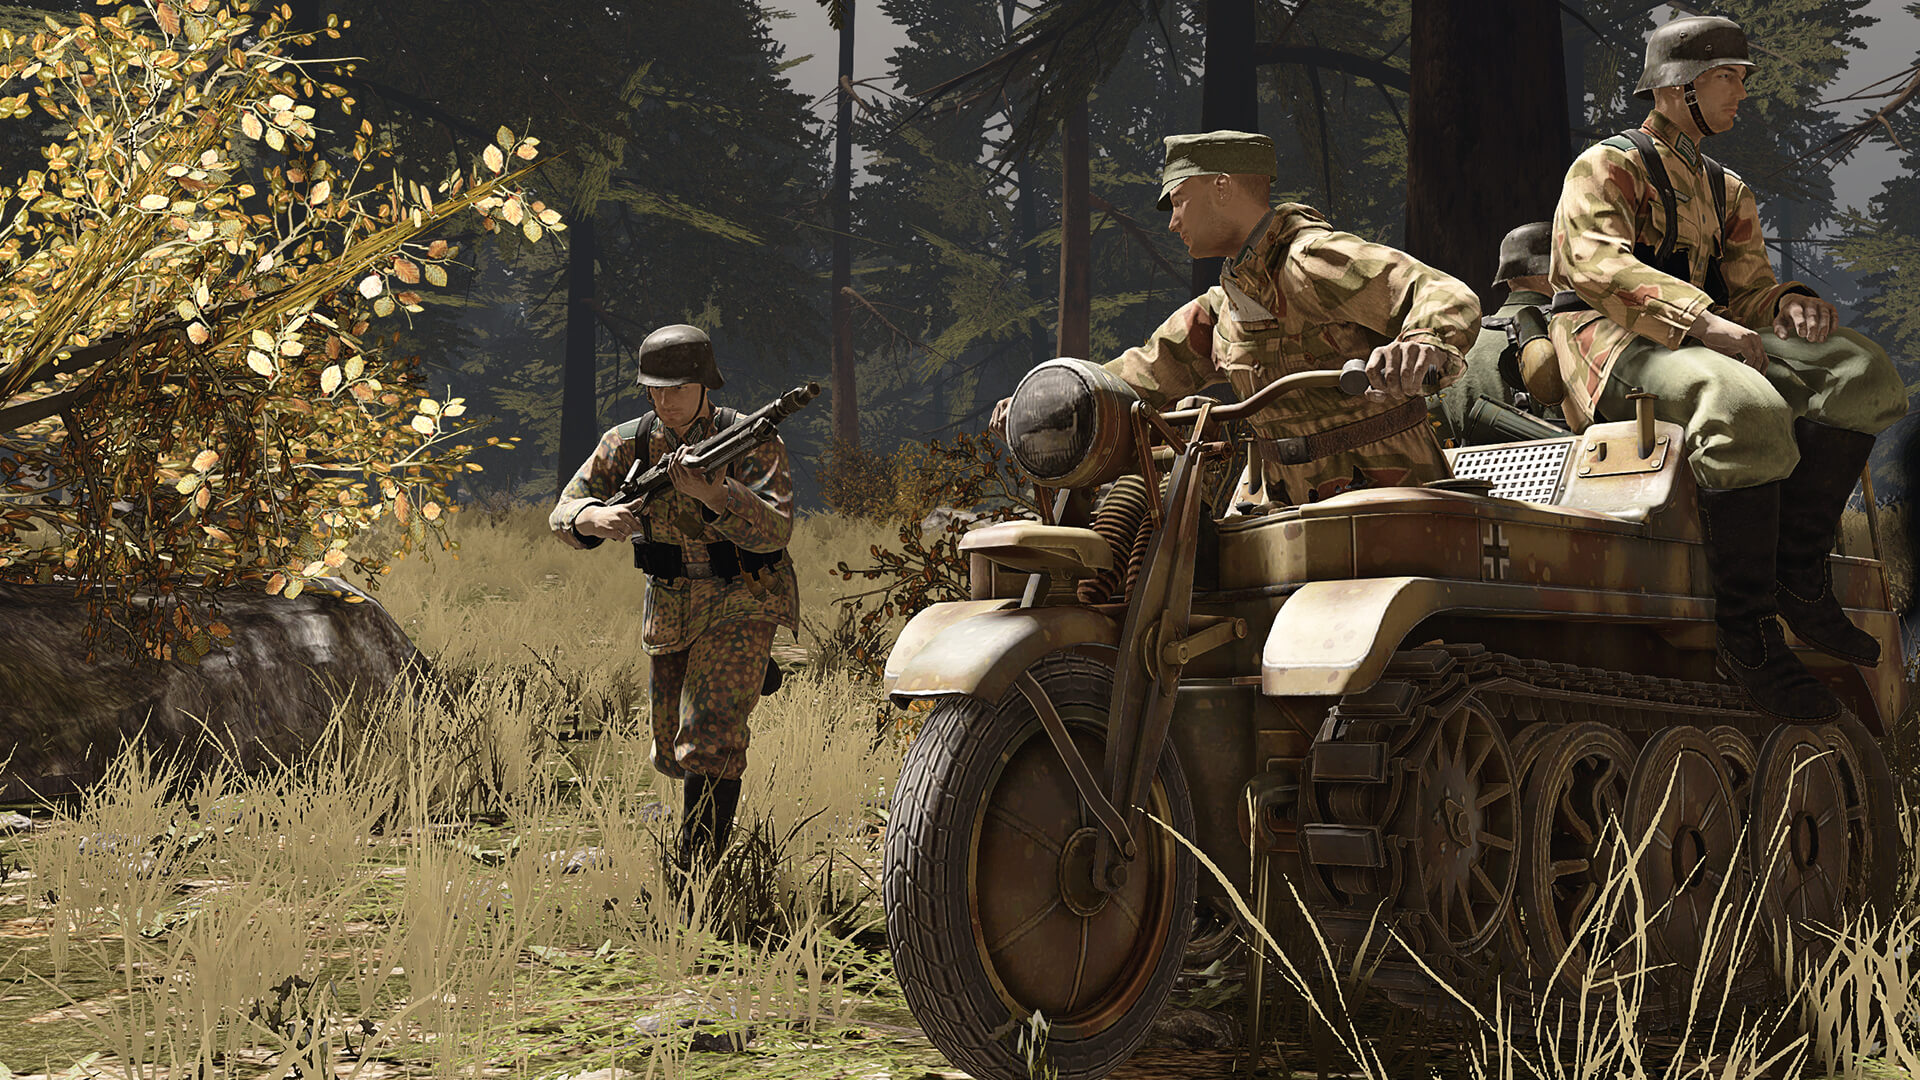 German soldiers in Heroes & Generals